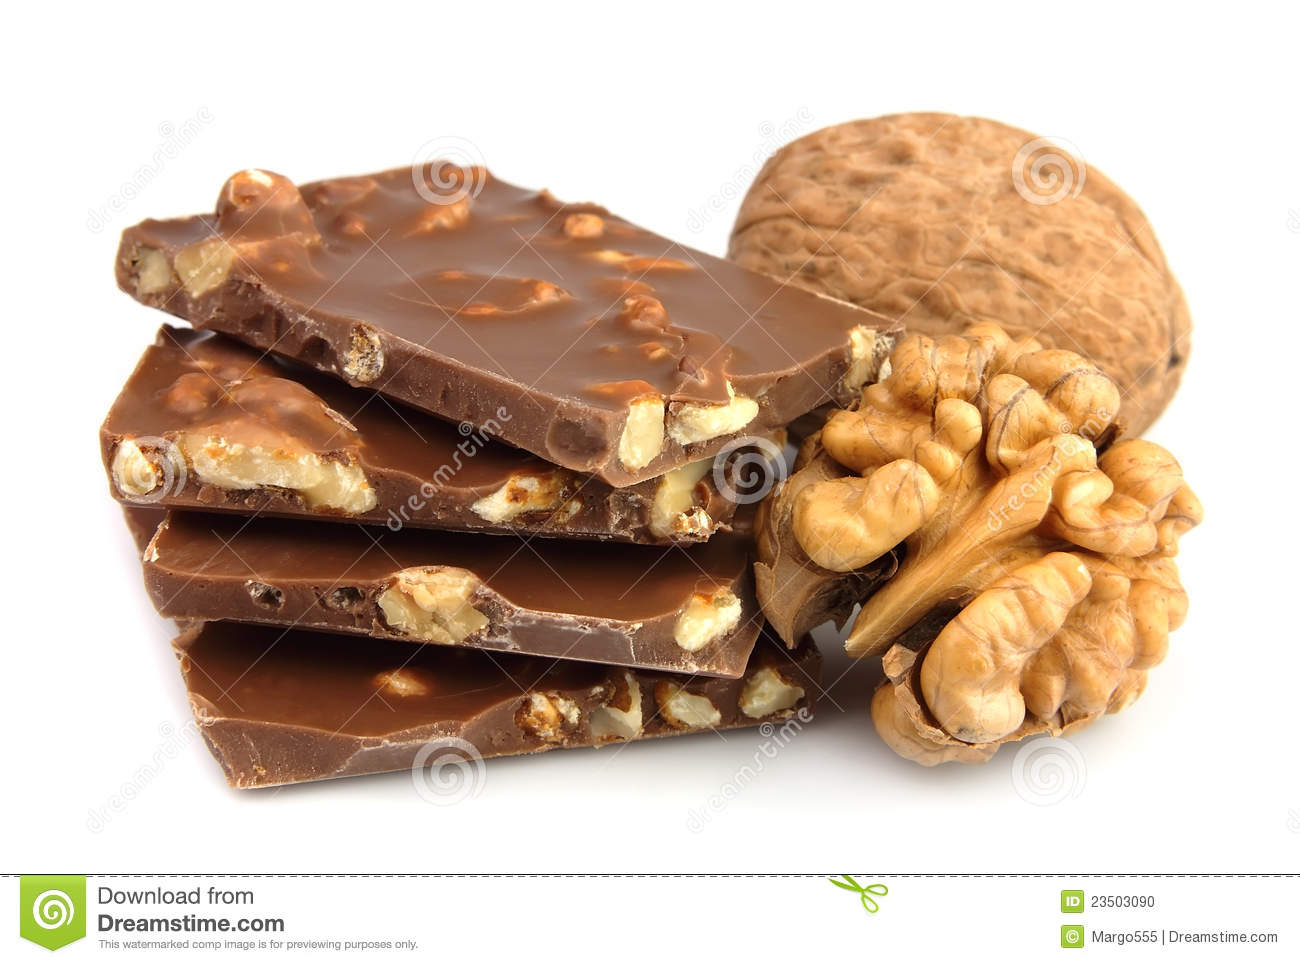 Chocolate With Nuts Stock Photo - Image: 23503090